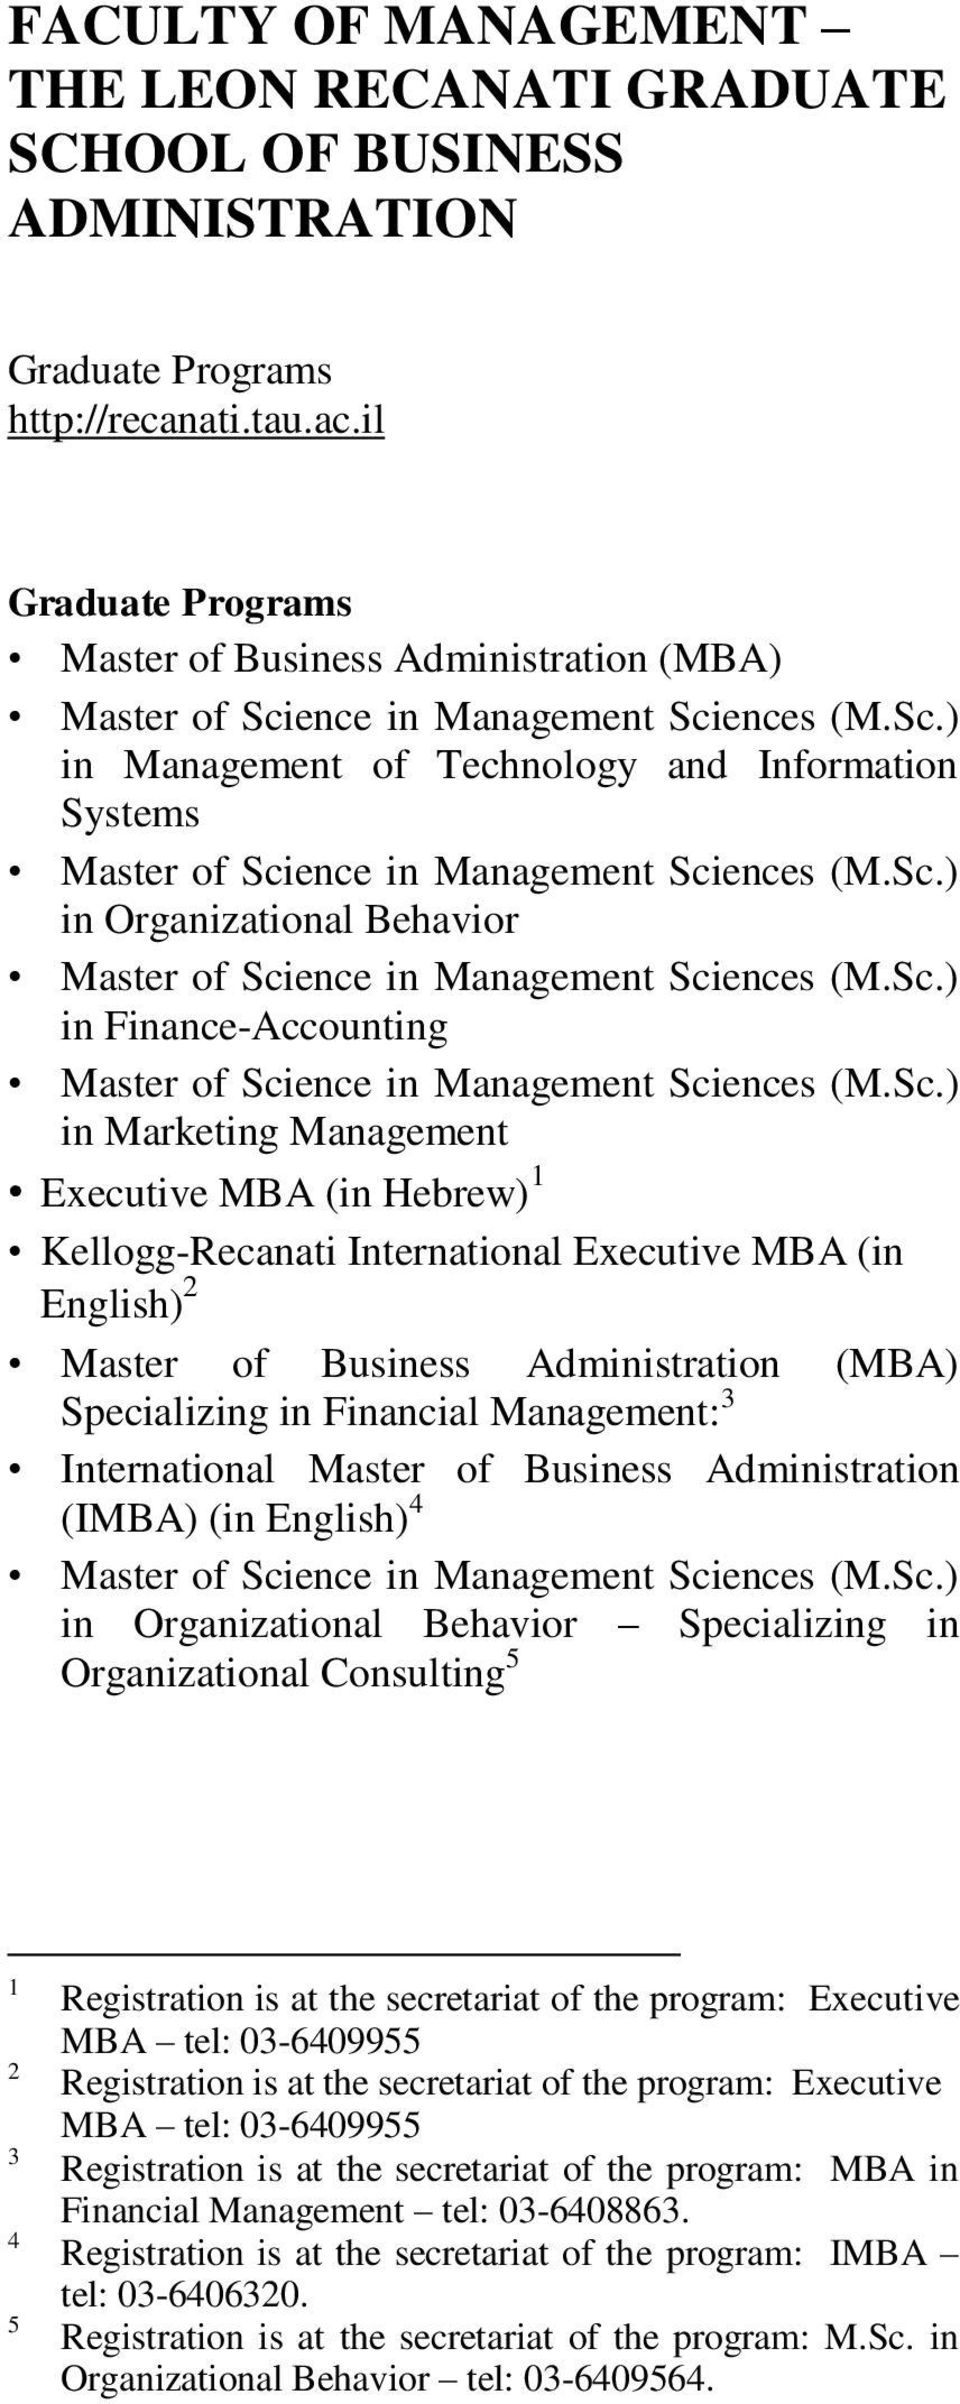 Sc.) in Organizational Behavior Master of Science in Management Sciences (M.Sc.) in Finance-Accounting Master of Science in Management Sciences (M.Sc.) in Marketing Management Executive MBA (in